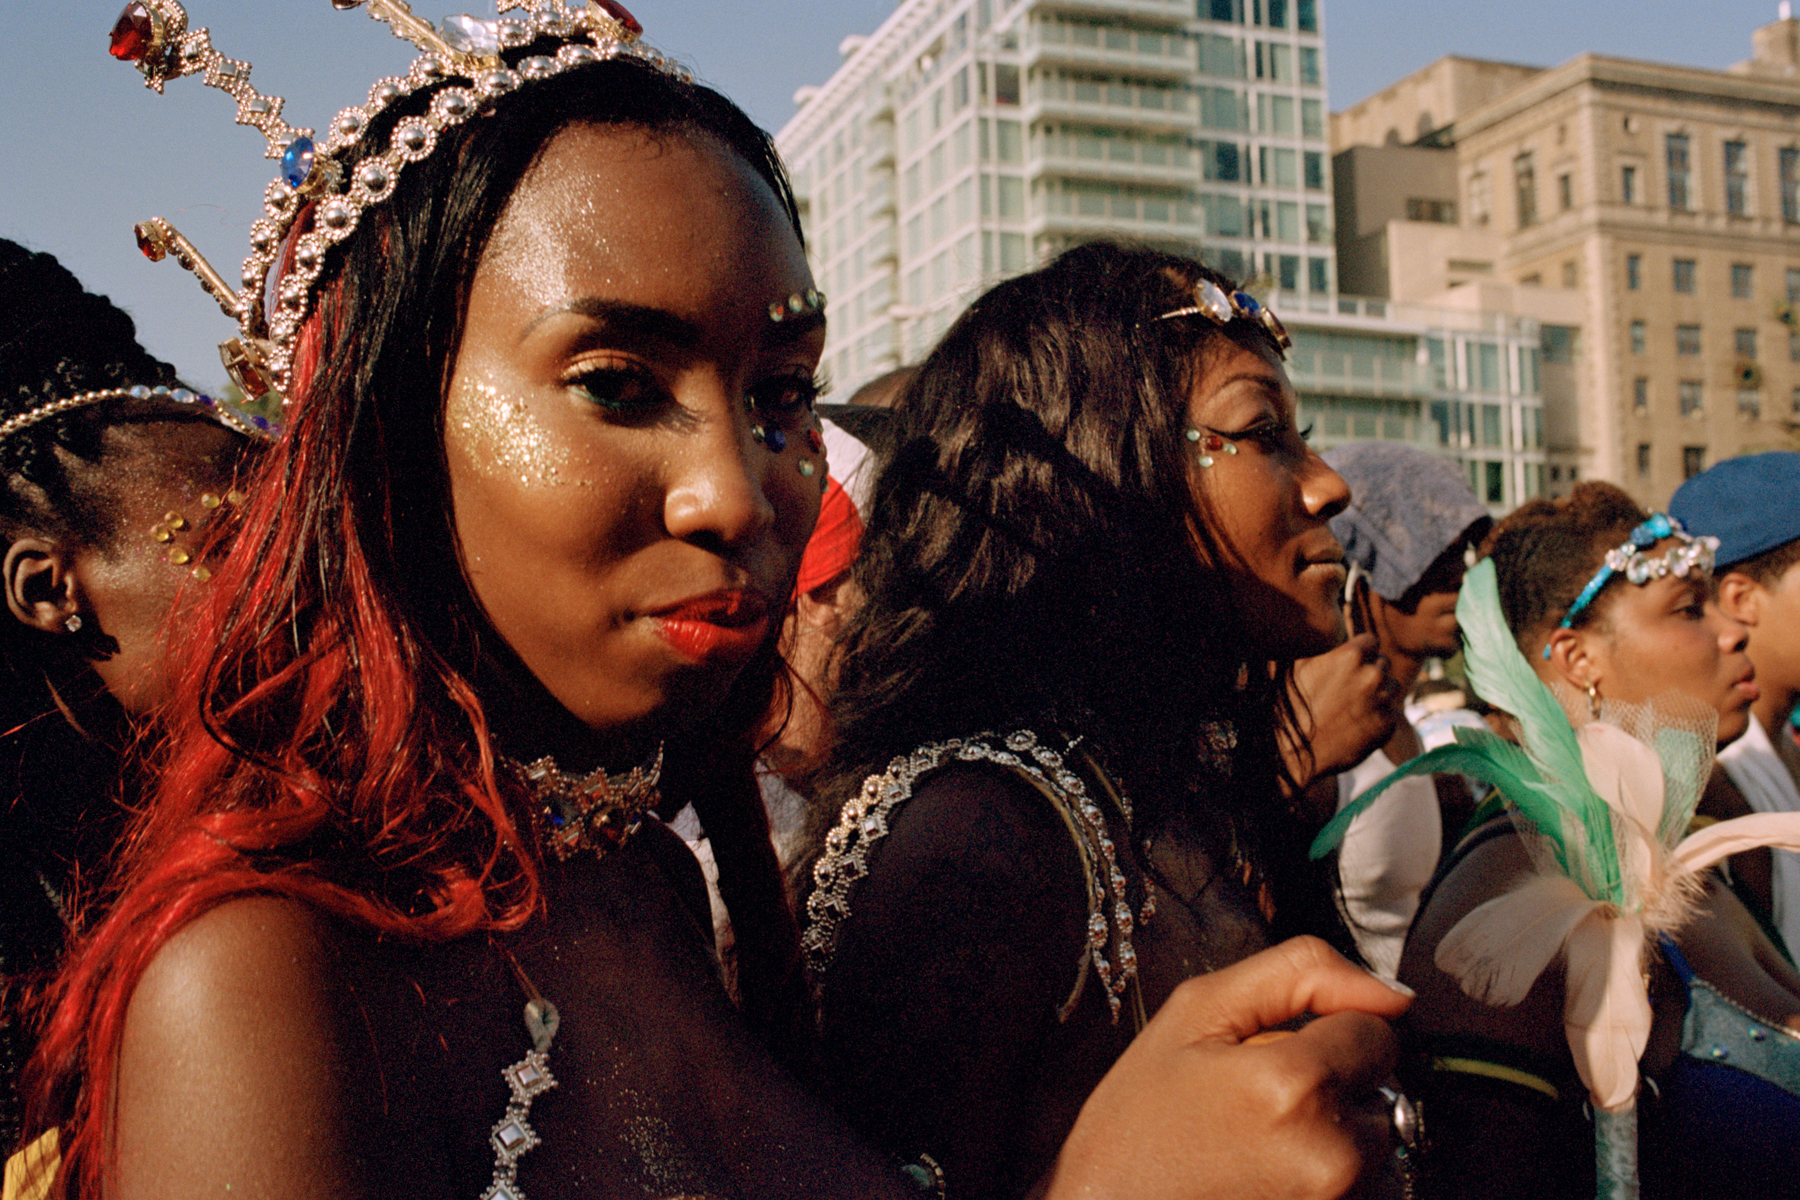 West Indian Day parade, Brooklyn, 2015